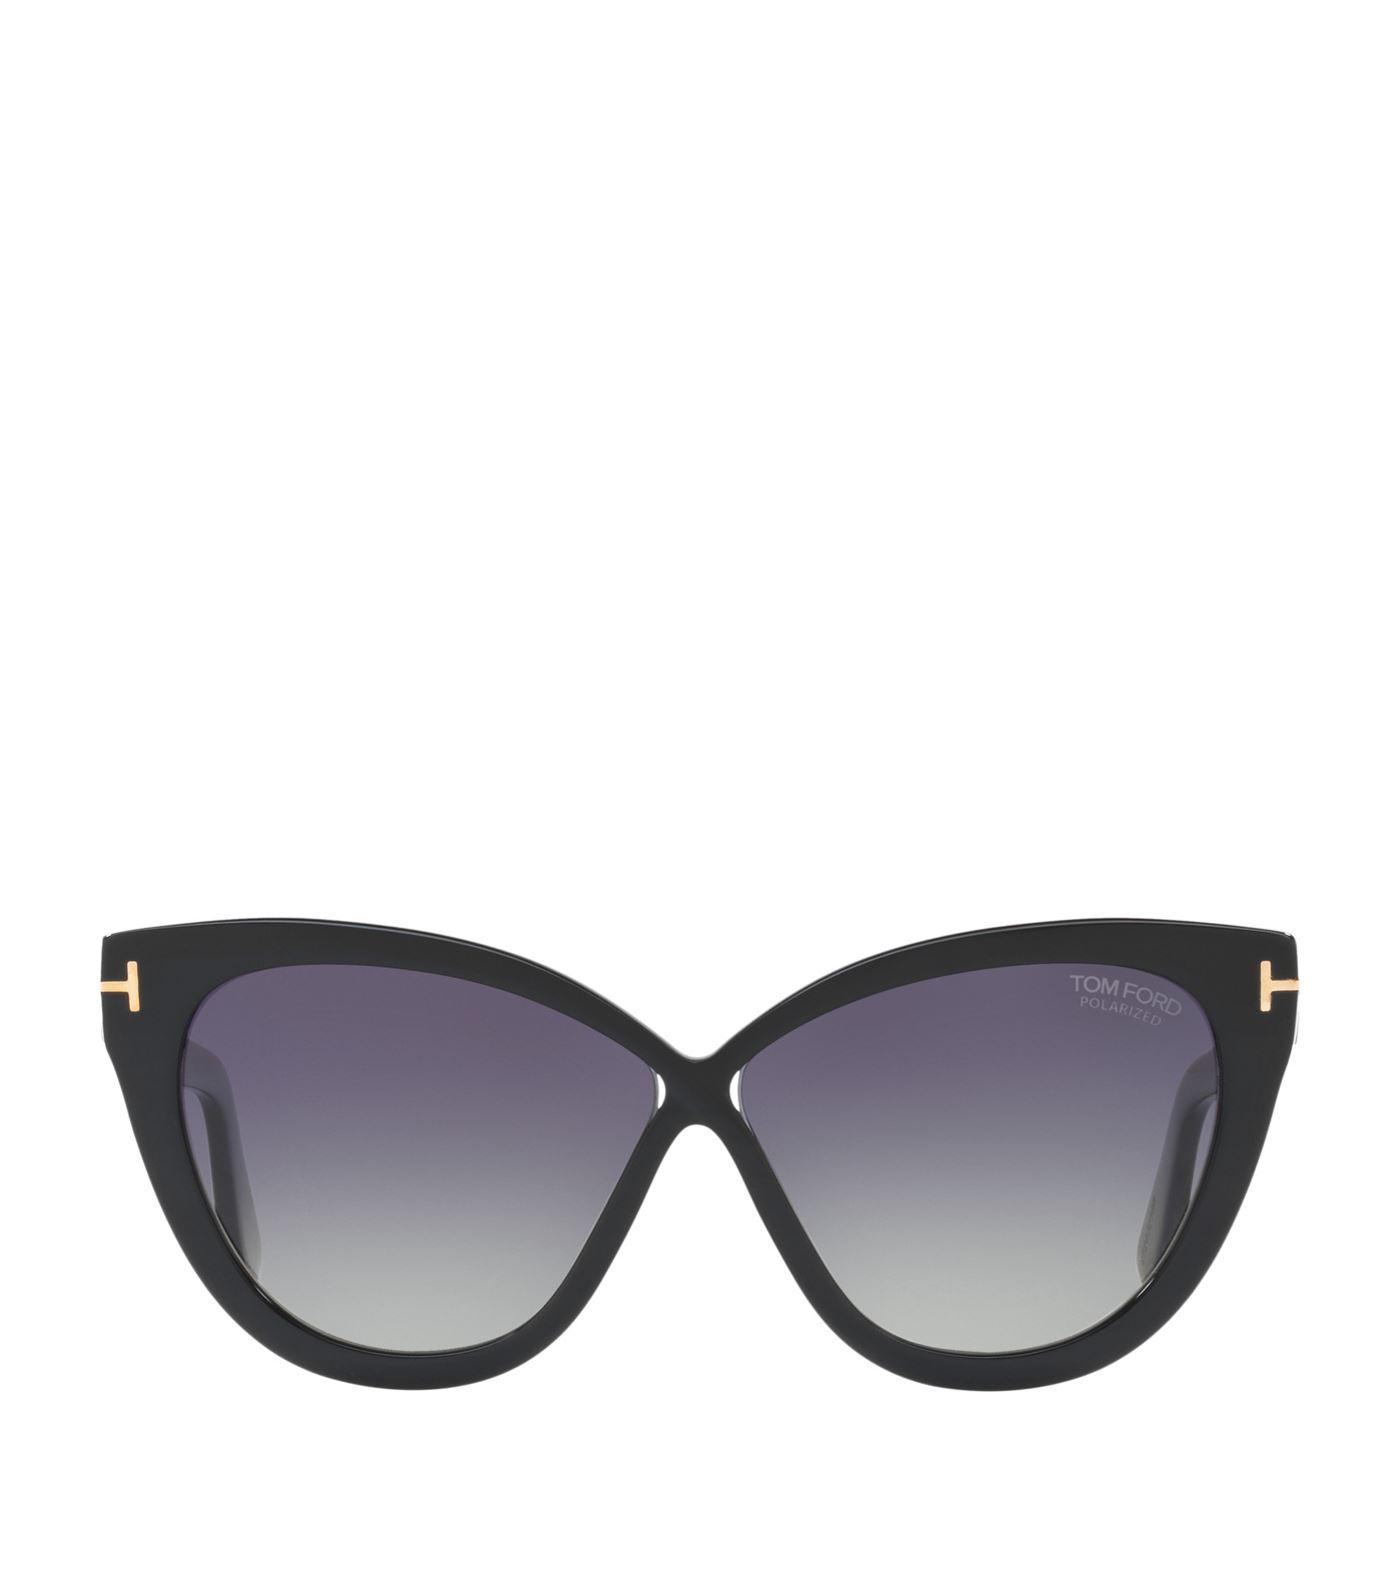 3ef9493aa41cc Tom Ford Reveka 59Mm Gradient Cat Eye Sunglasess - Black  Rose Gold  Silver  Flash